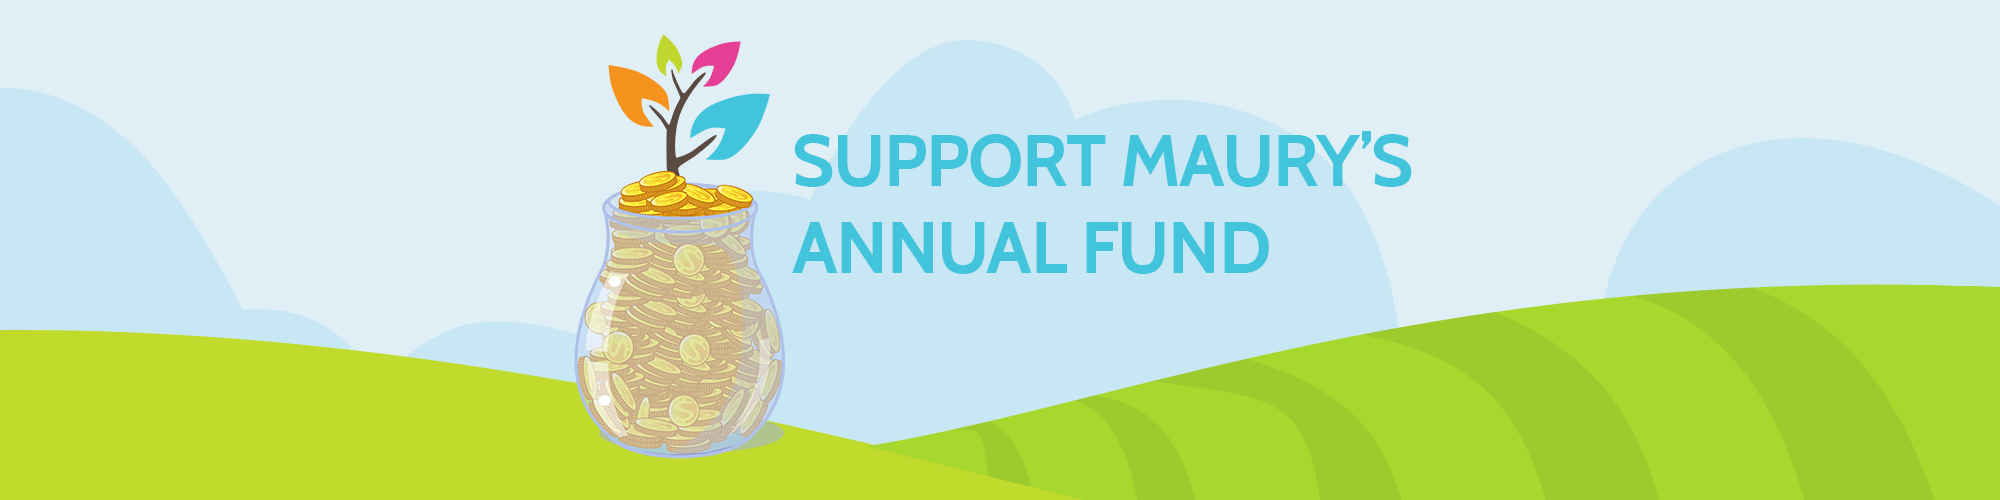 Support Maury's Annual Fund